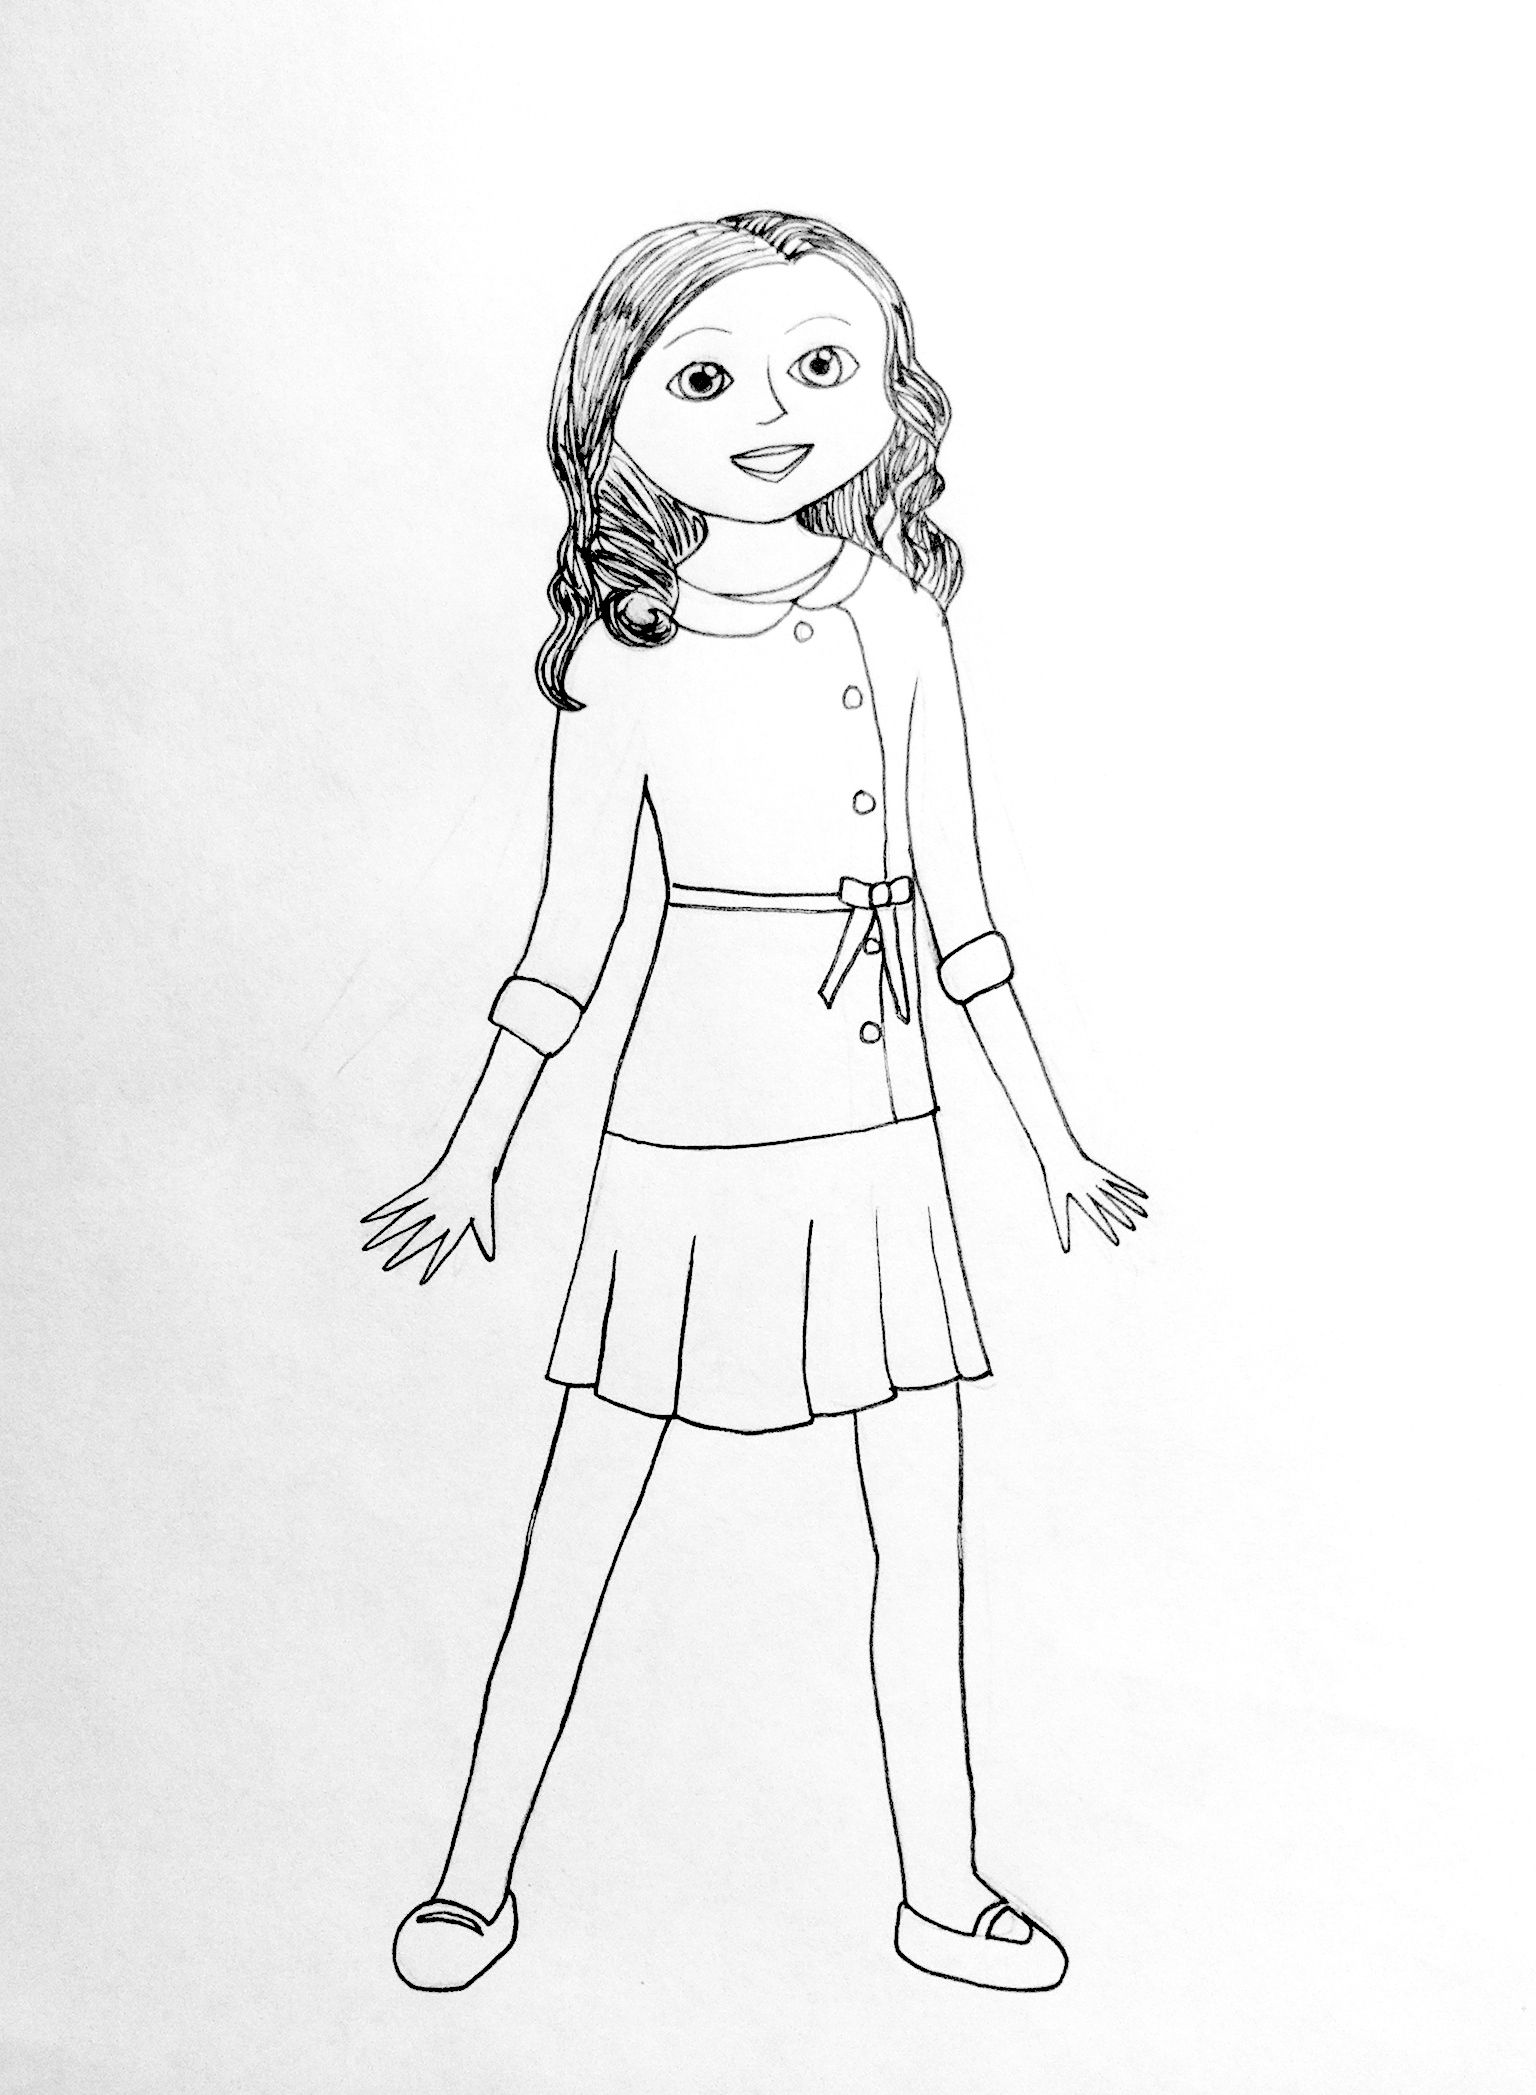 Caroline Doll Friend To Coloring Pages Google Search Adult